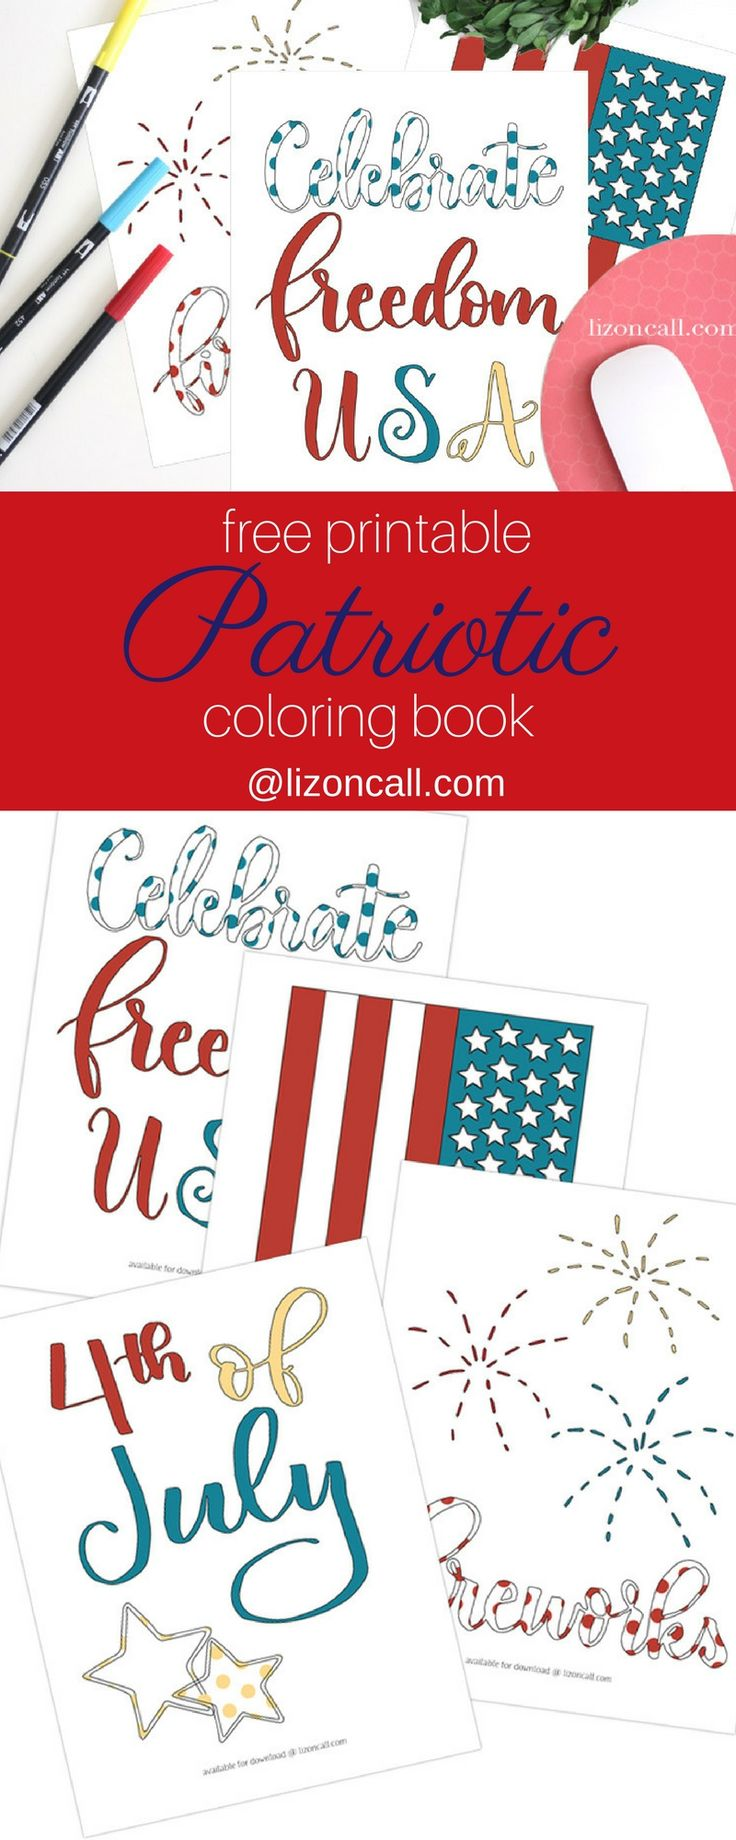 Coloring pages for dots for 4 of july - Free Patriotic Coloring Book